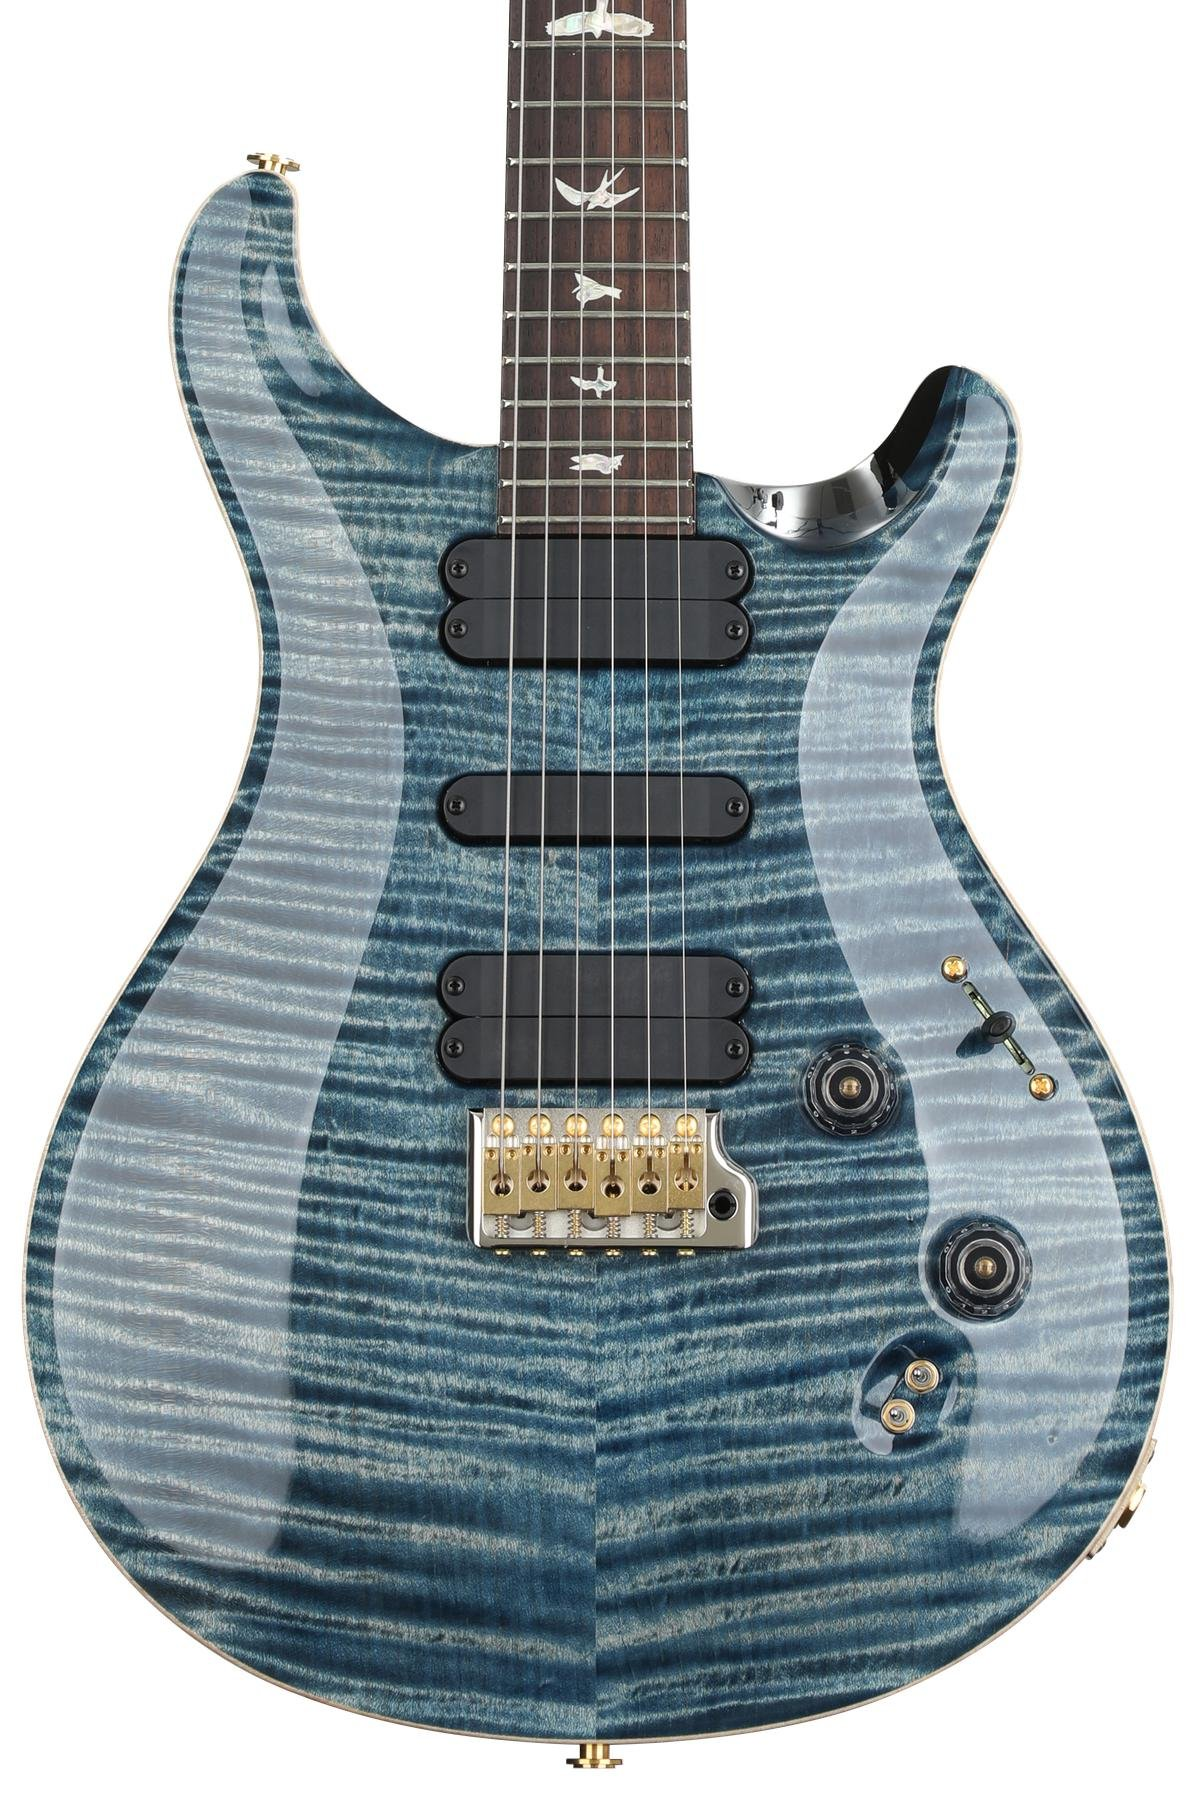 Prs 509 10 Top Faded Whale Blue Sweetwater Guitar Image 1